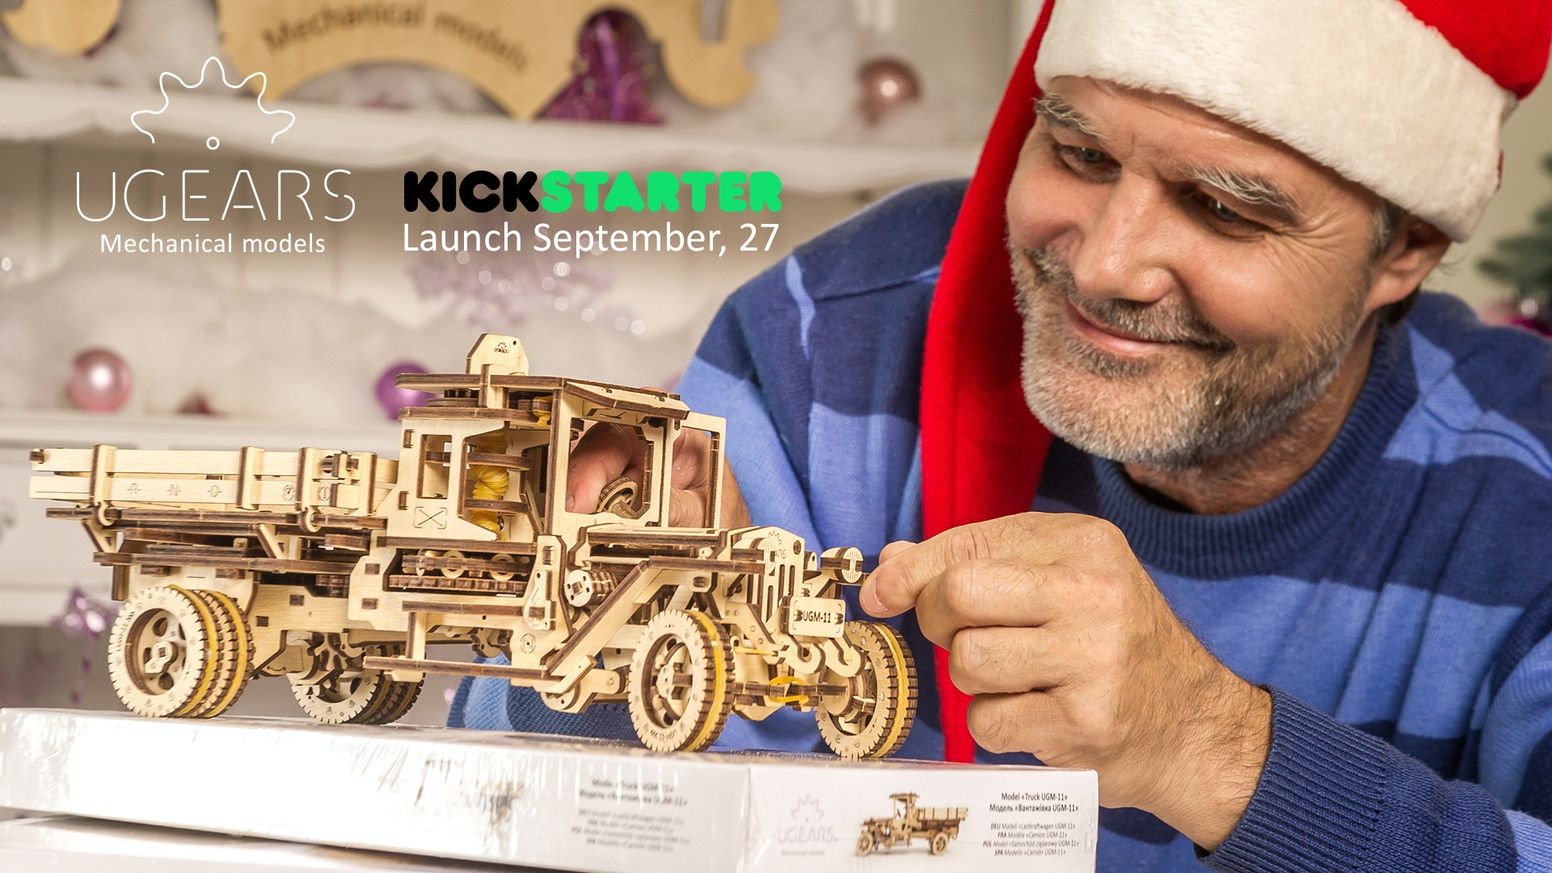 Wooden self-propelled 3D models for self-assembly and hobby. Santa has already ordered one:)